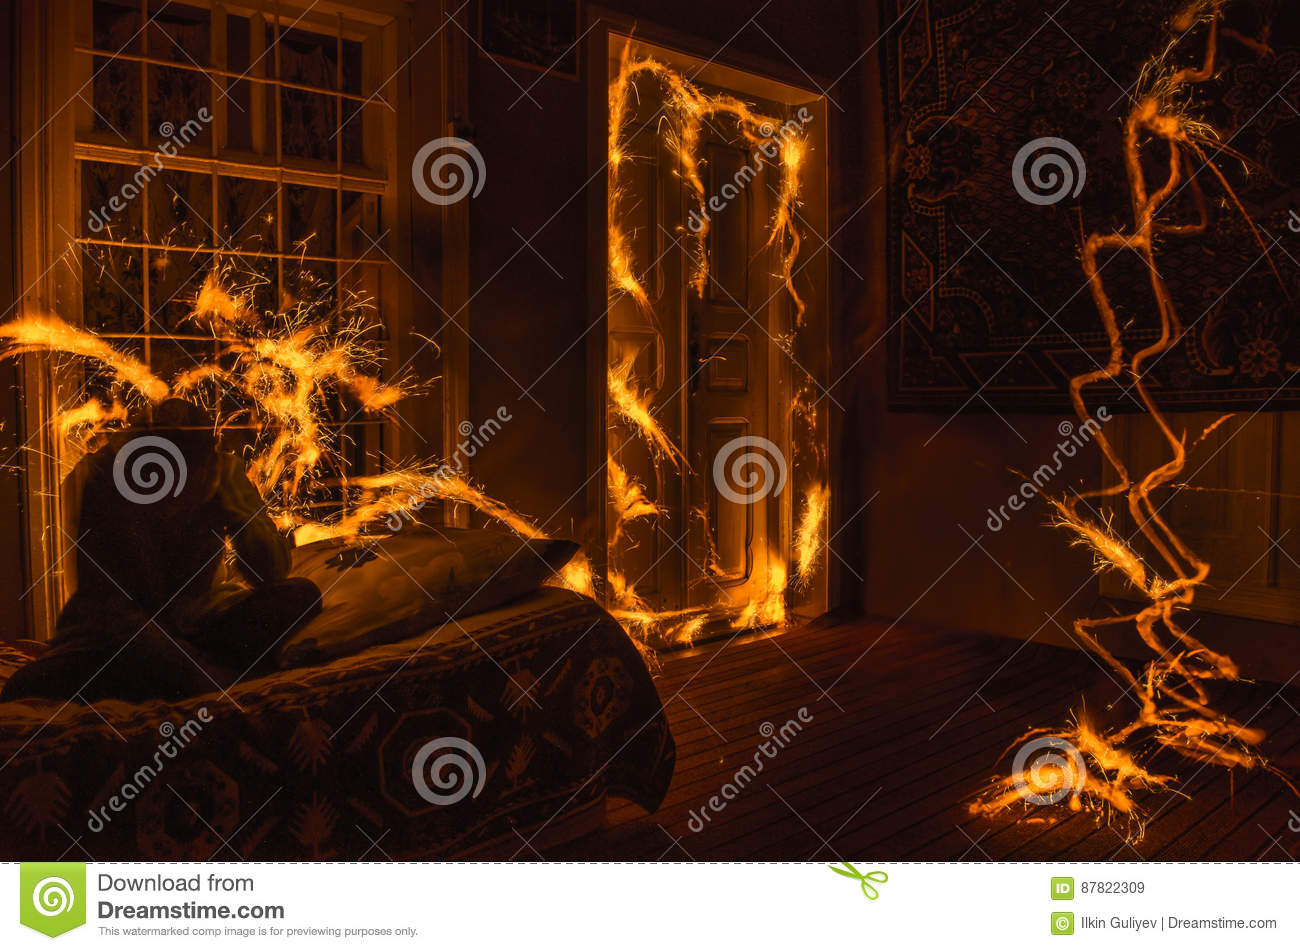 Abstract fireworks flame freezelight on window. Apartment building on Fire at Night time. Fire concept. Azerbaijan